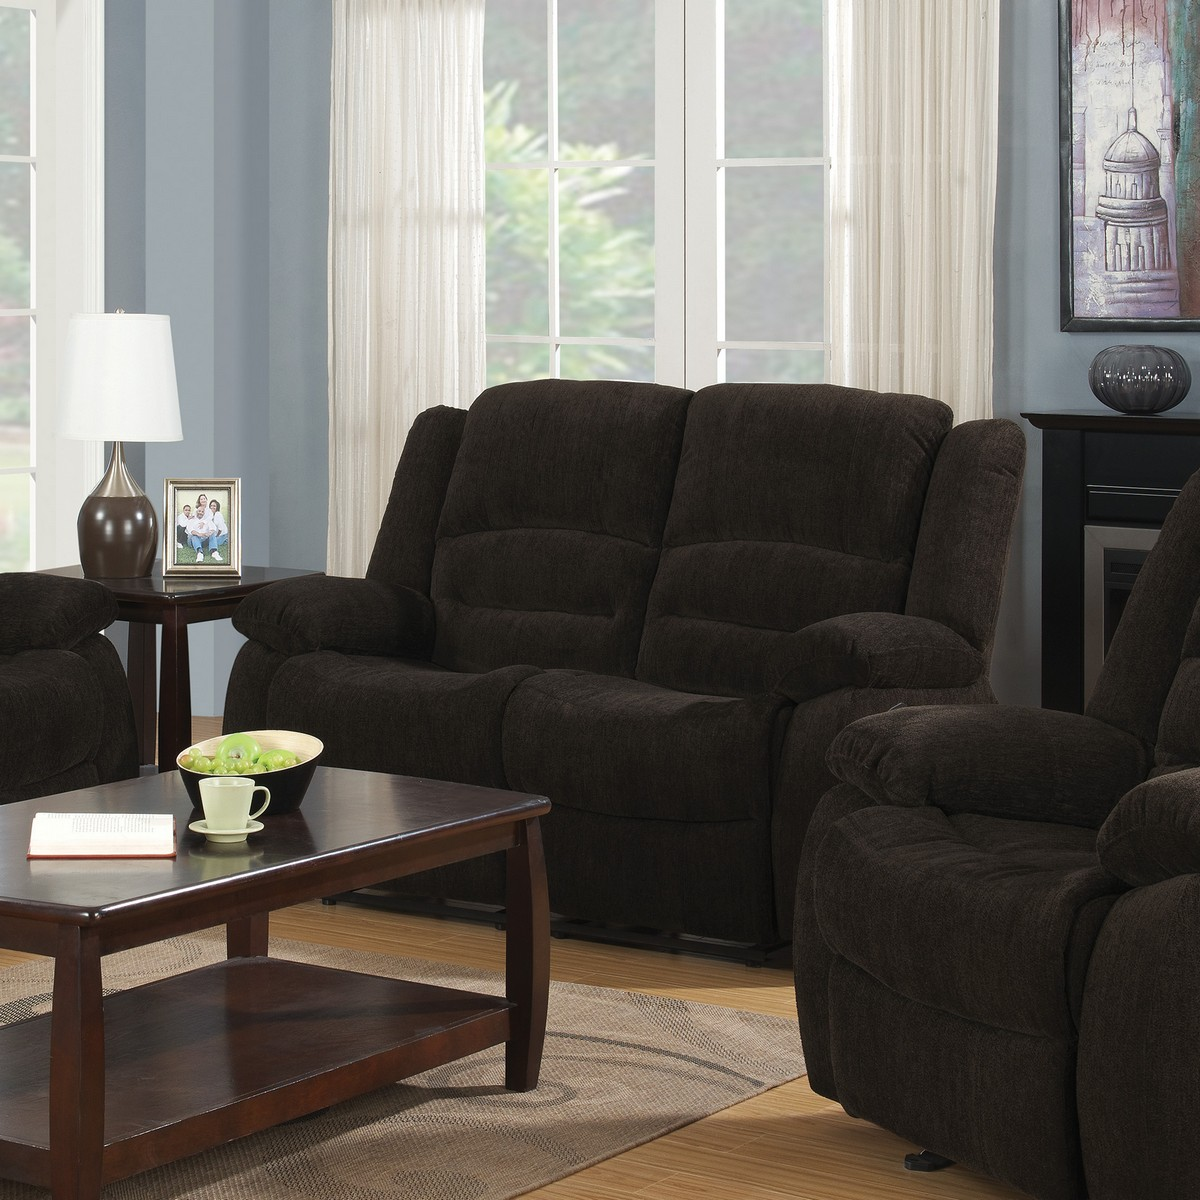 Coaster Gordon Motion Sofa Set Dark Brown 60146 Sofa Set